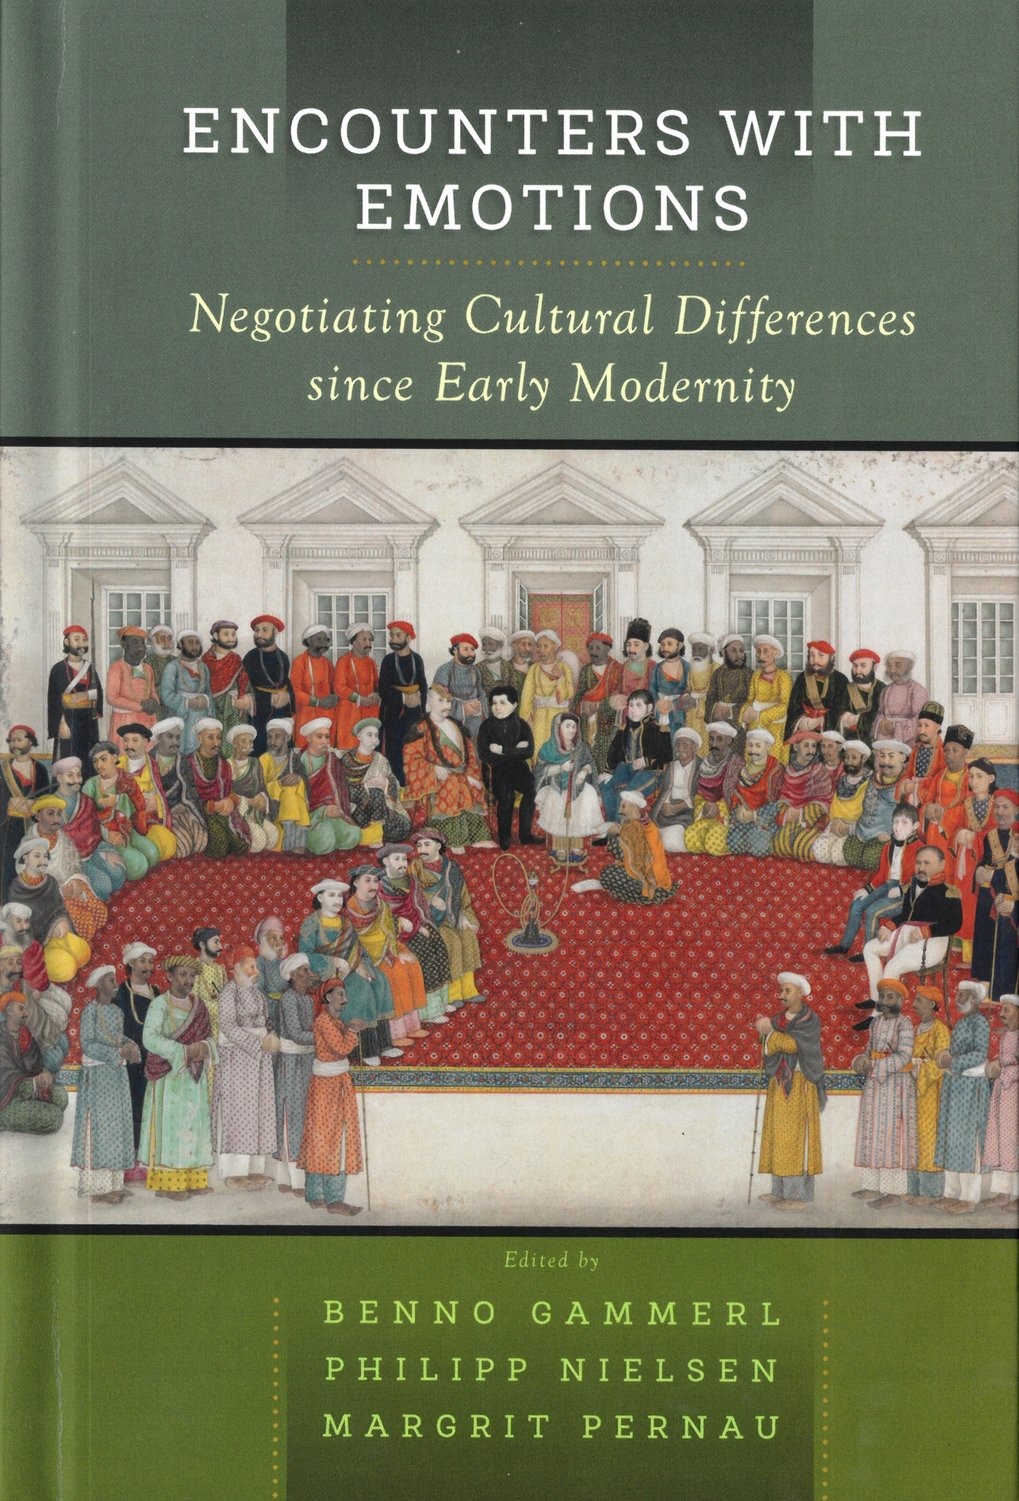 Benno Gammerl, Philipp Nielsen, Margrit Pernau (eds), <em>Encounters with Emotions: Negotiating Cultural Differences since Early Modernity. </em>New York: Berghahn Books, 2019.<em><br /></em>